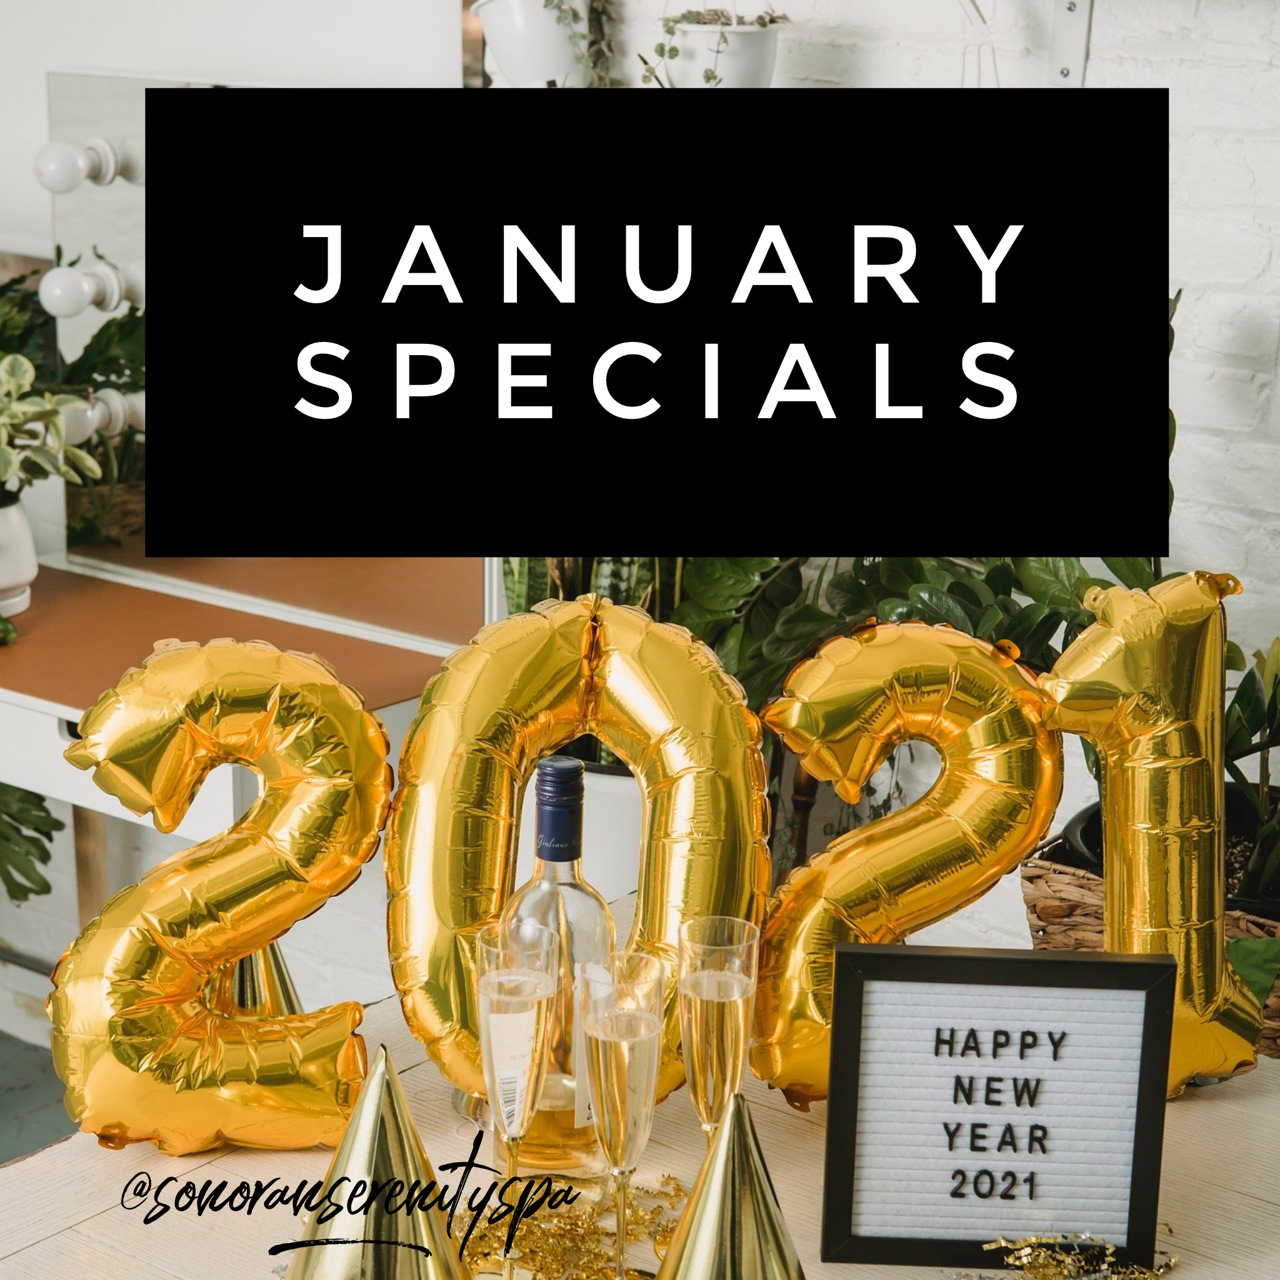 january specials.PNG